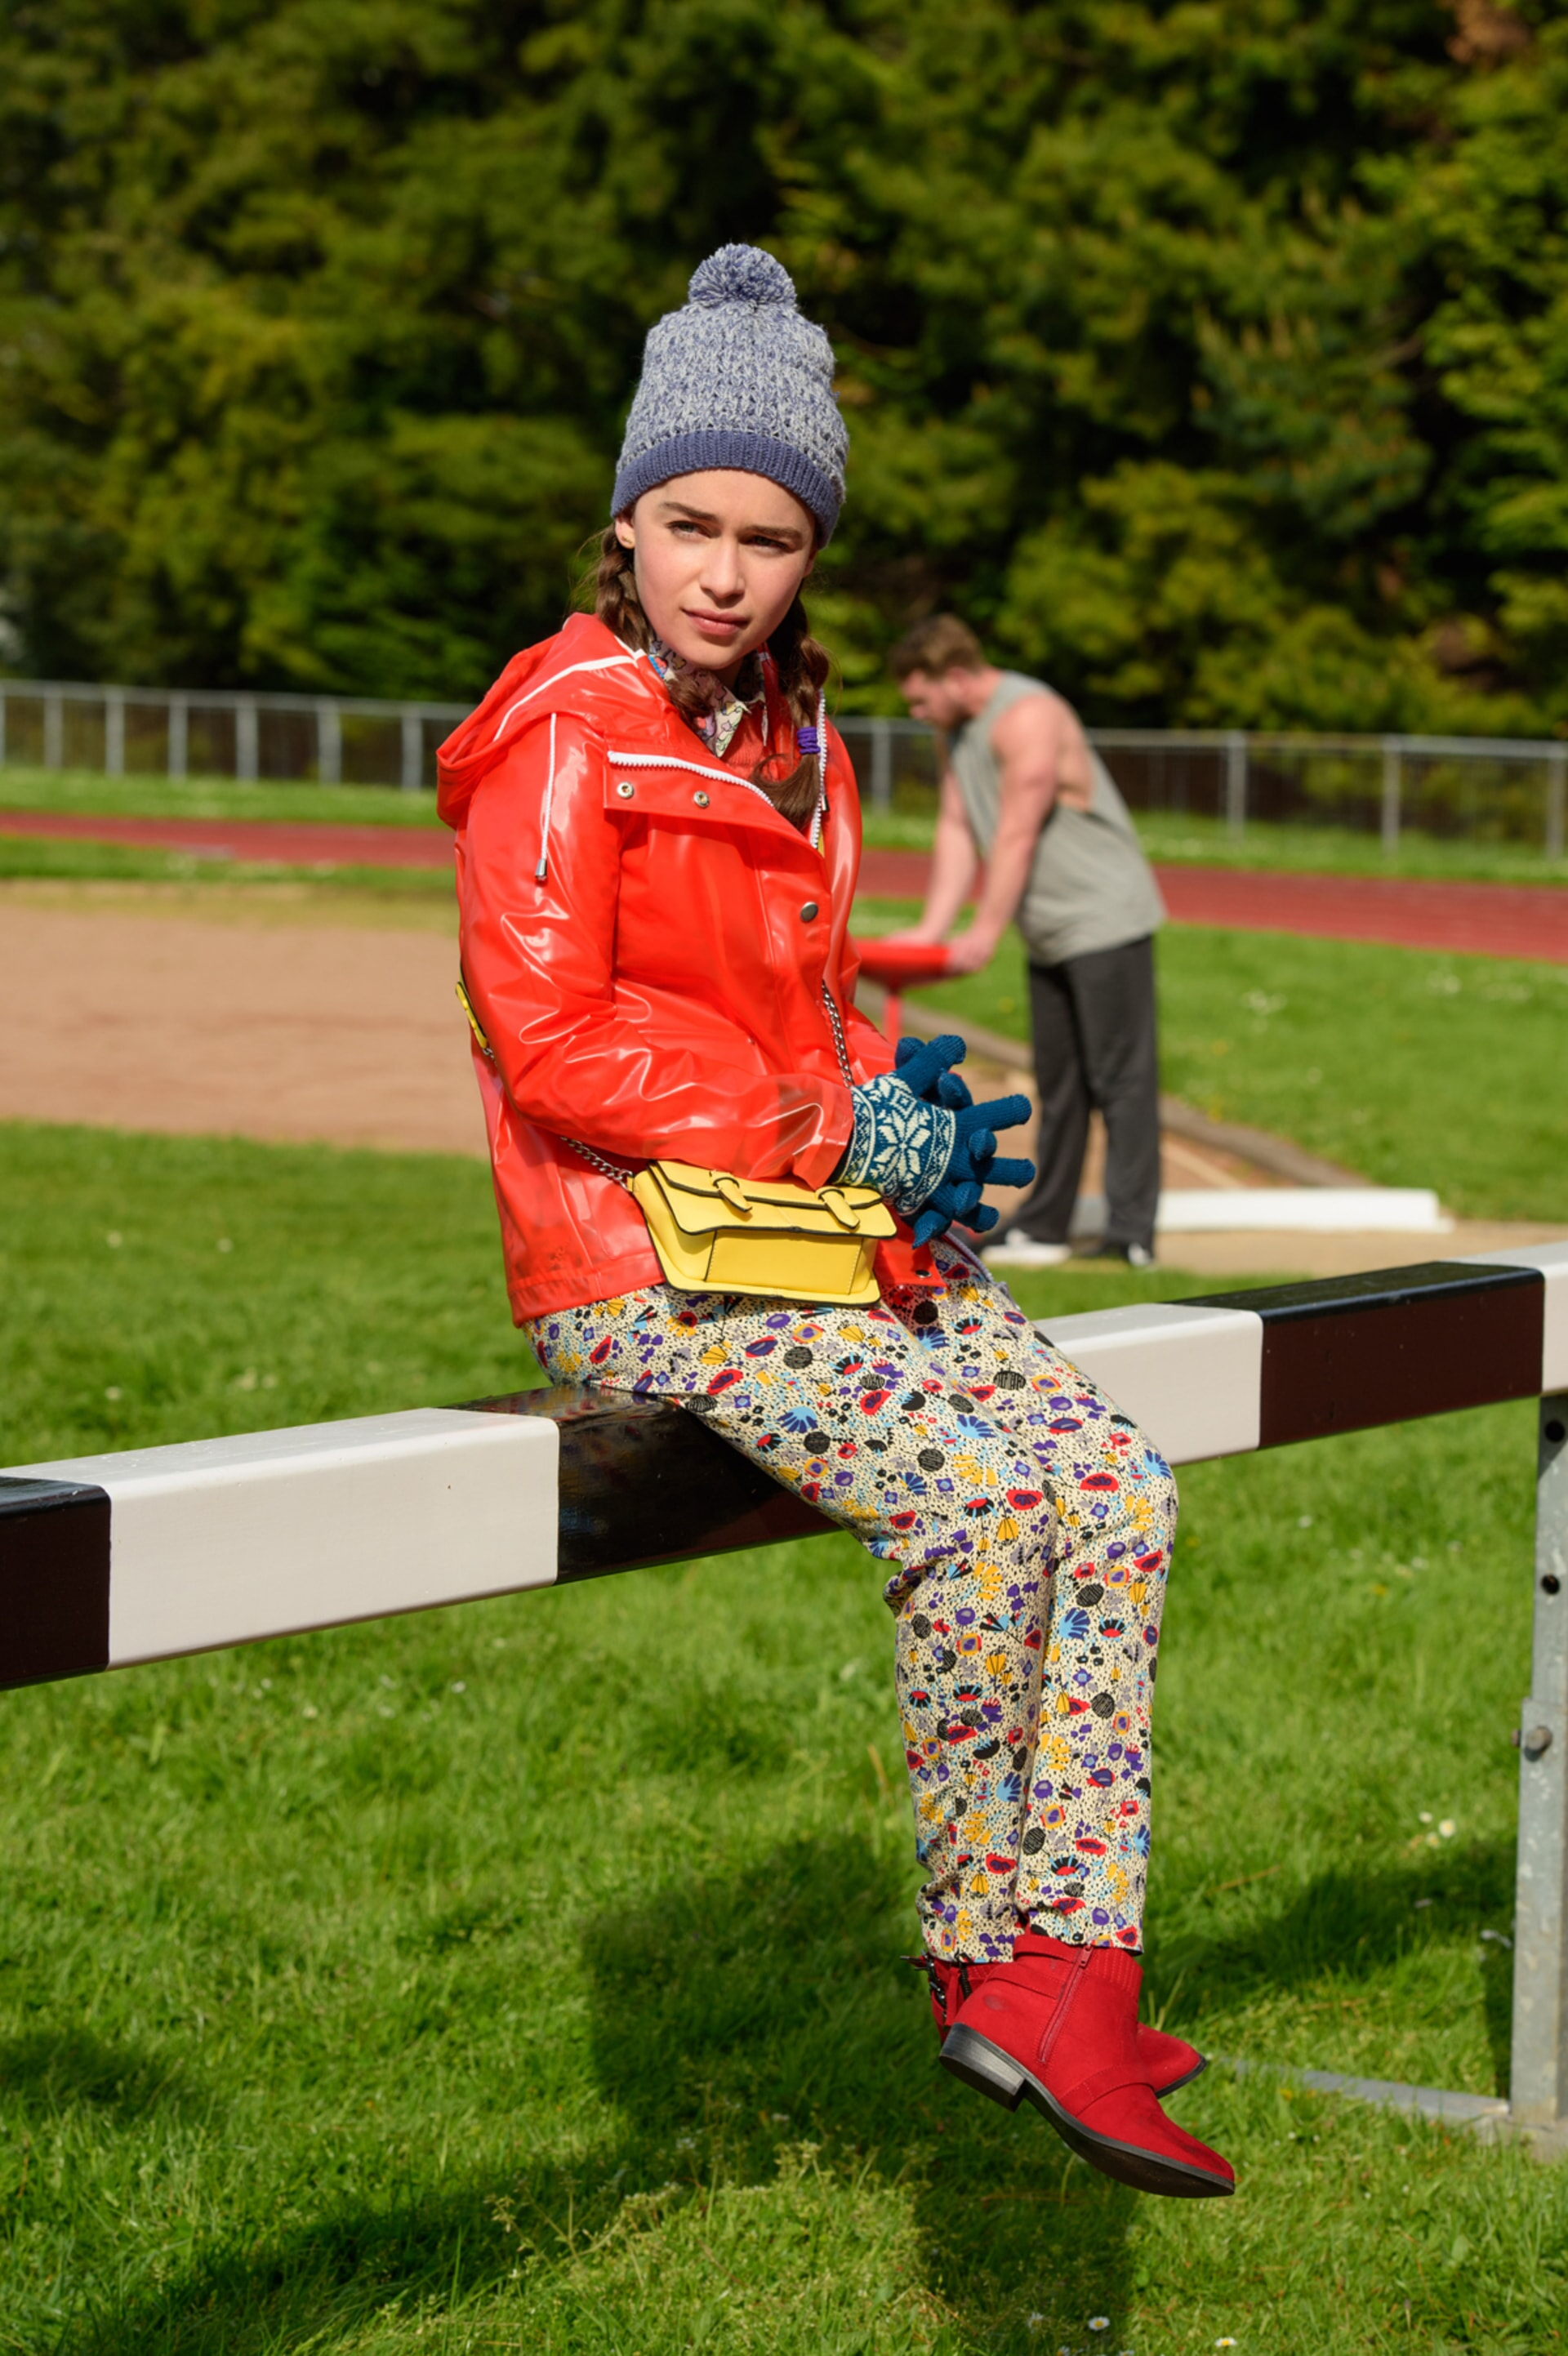 EMILIA CLARKE as Lou Clark wearing a red casual jacket and blue knit cap, sitting on a fence.